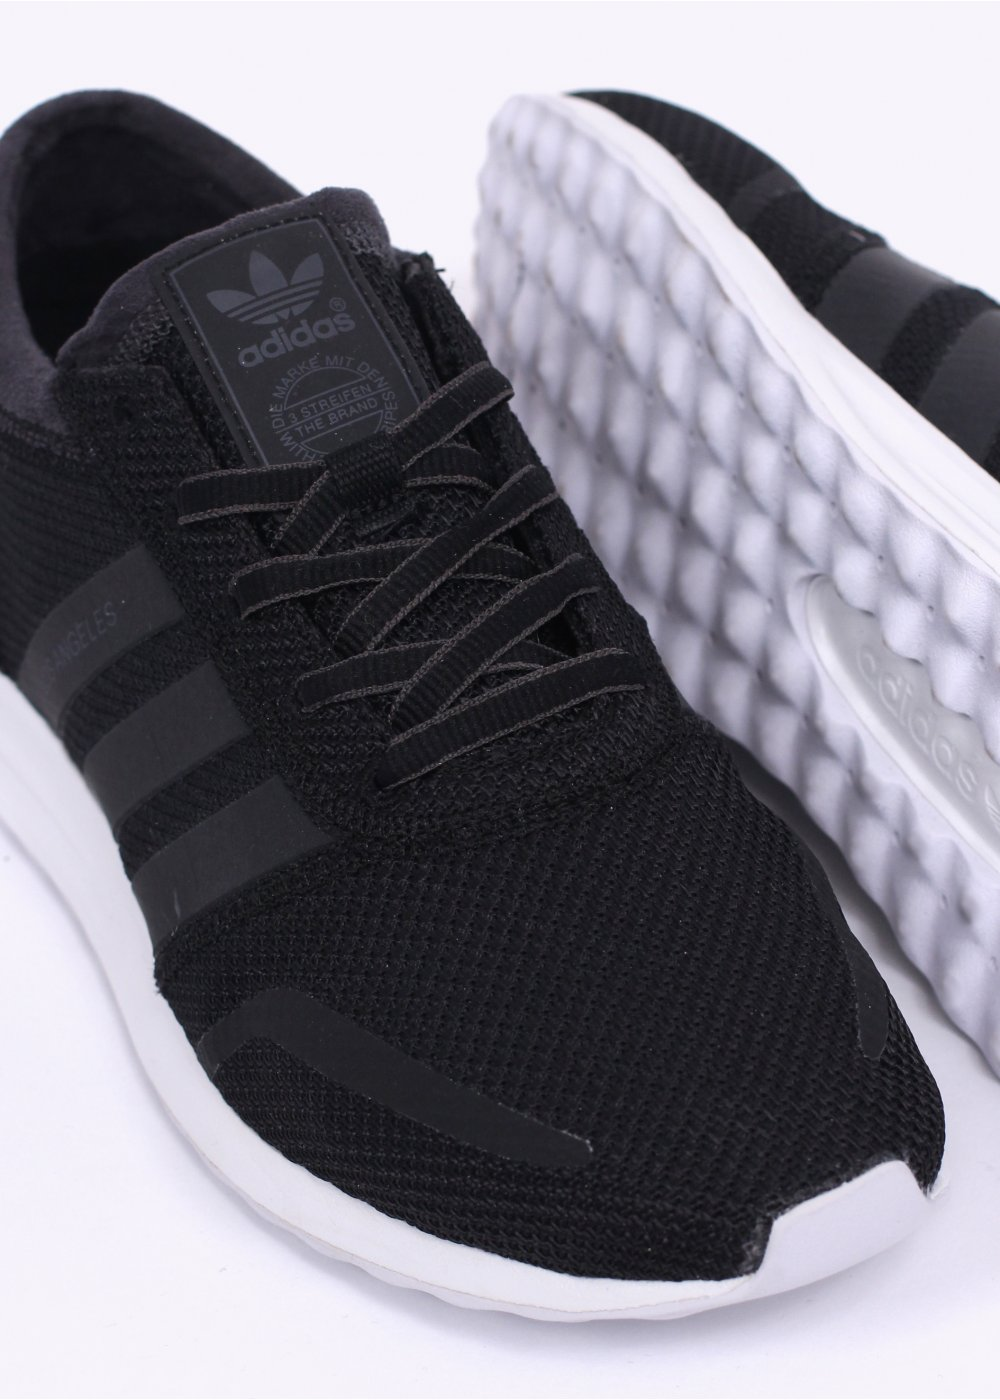 Adidas Originals Originals Top Ten Low Sneaker In Black: Adidas Originals Los Angeles Trainers